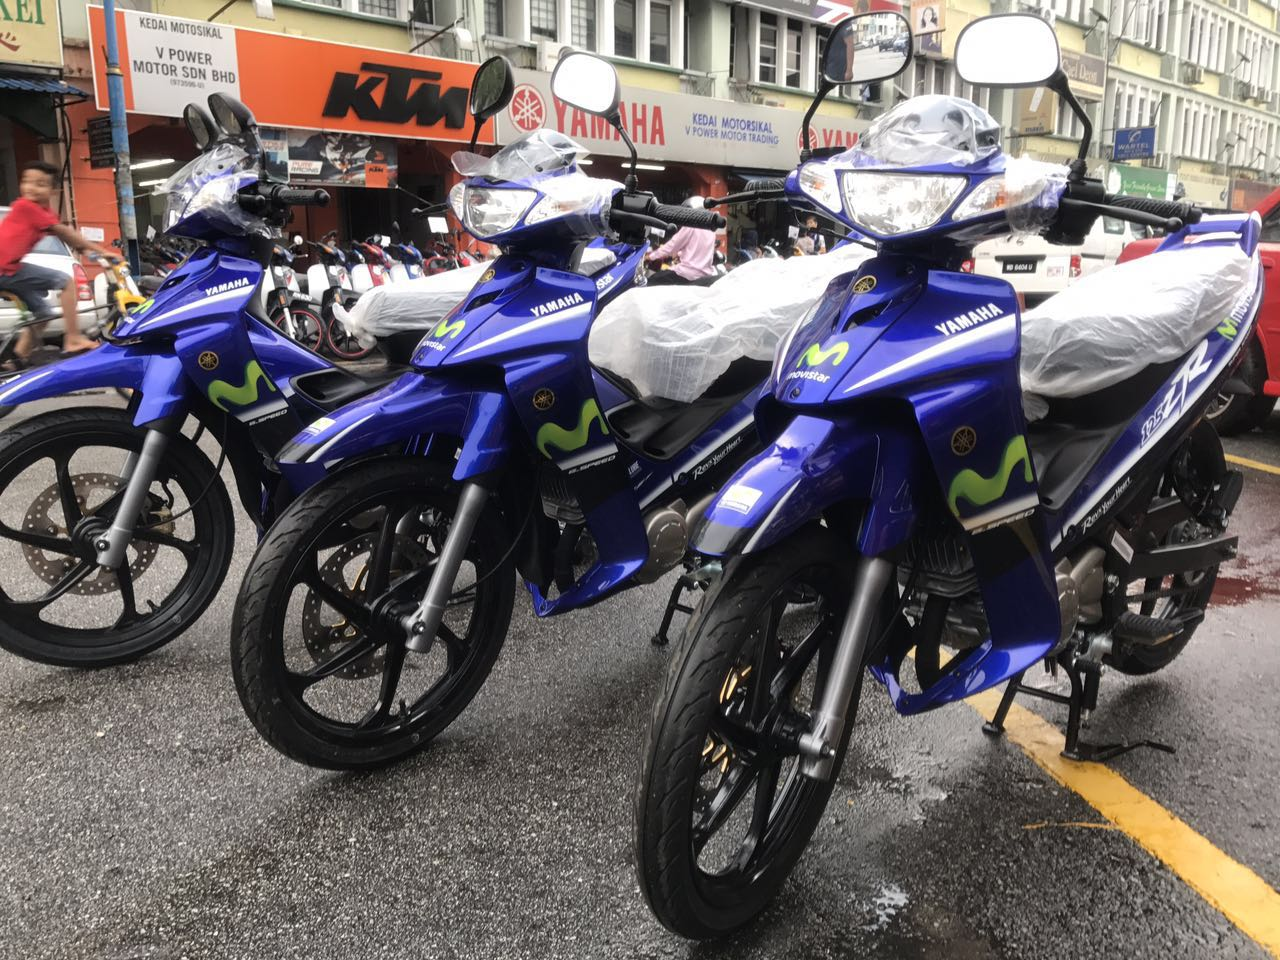 V power motor yamaha y125zr movistar limited for Yamaha installment financing